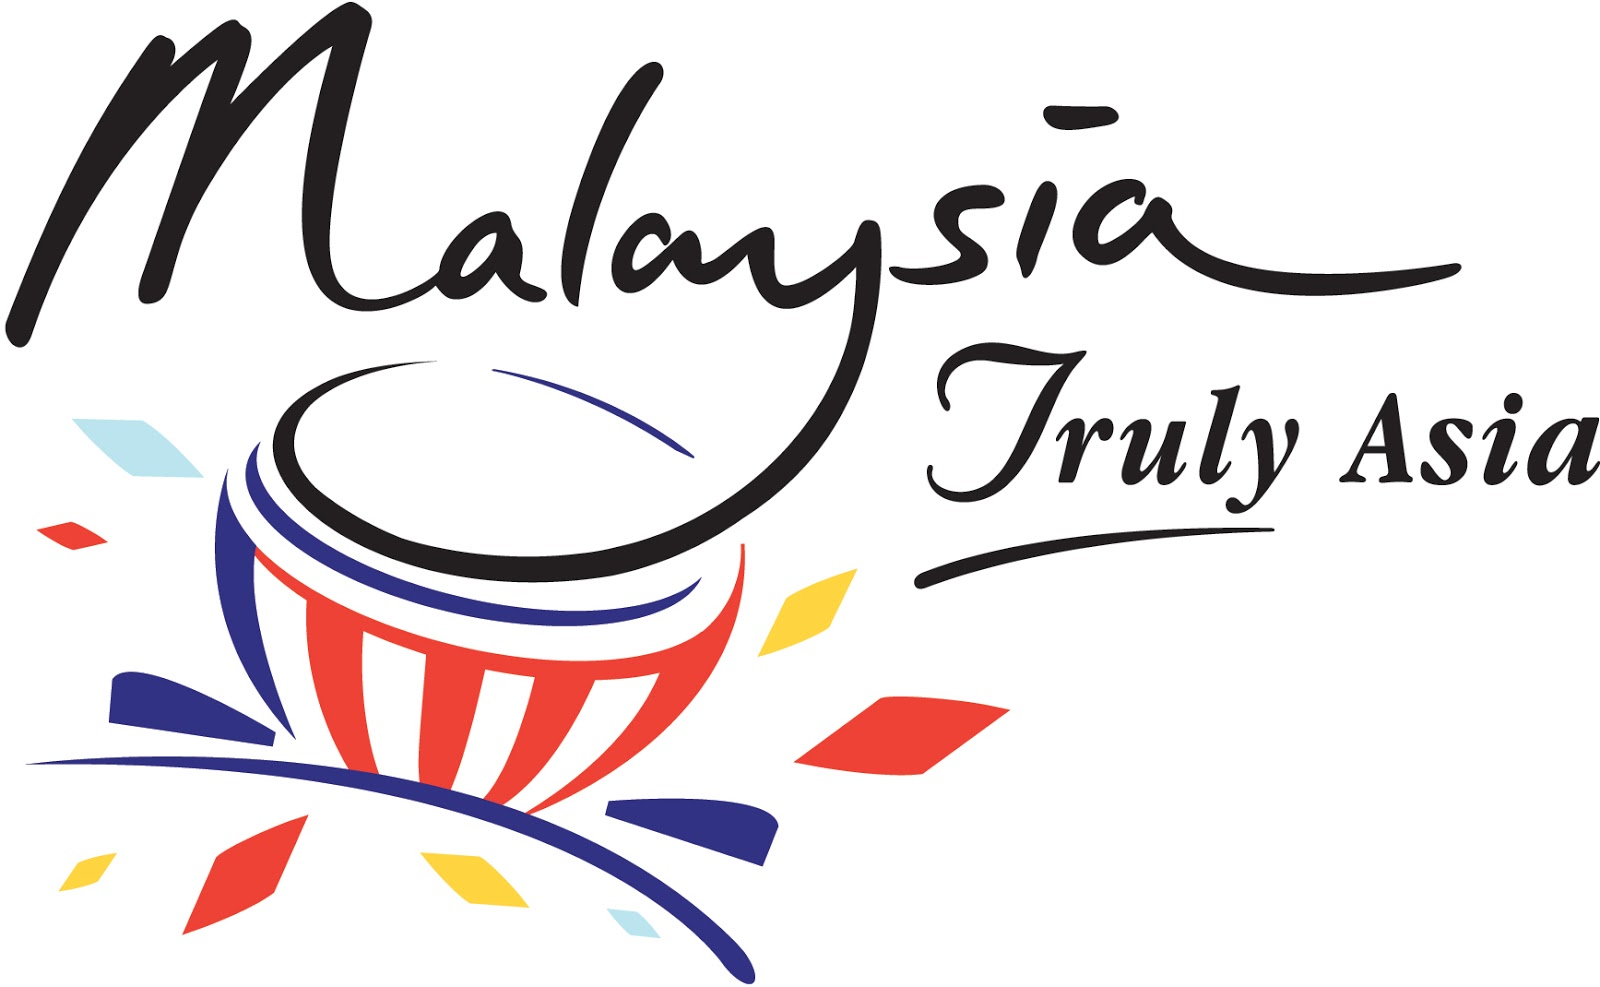 how to promote malaysia tourism Best 21 part time doctoral programs in malaysia 2017/2018 the world is not such a lonely planet anymore but the very resources we promote through tourism are in danger of degradation essays - largest database of quality sample essays and research papers on malaysia national day celebration to see this page in other essay how to promote local.